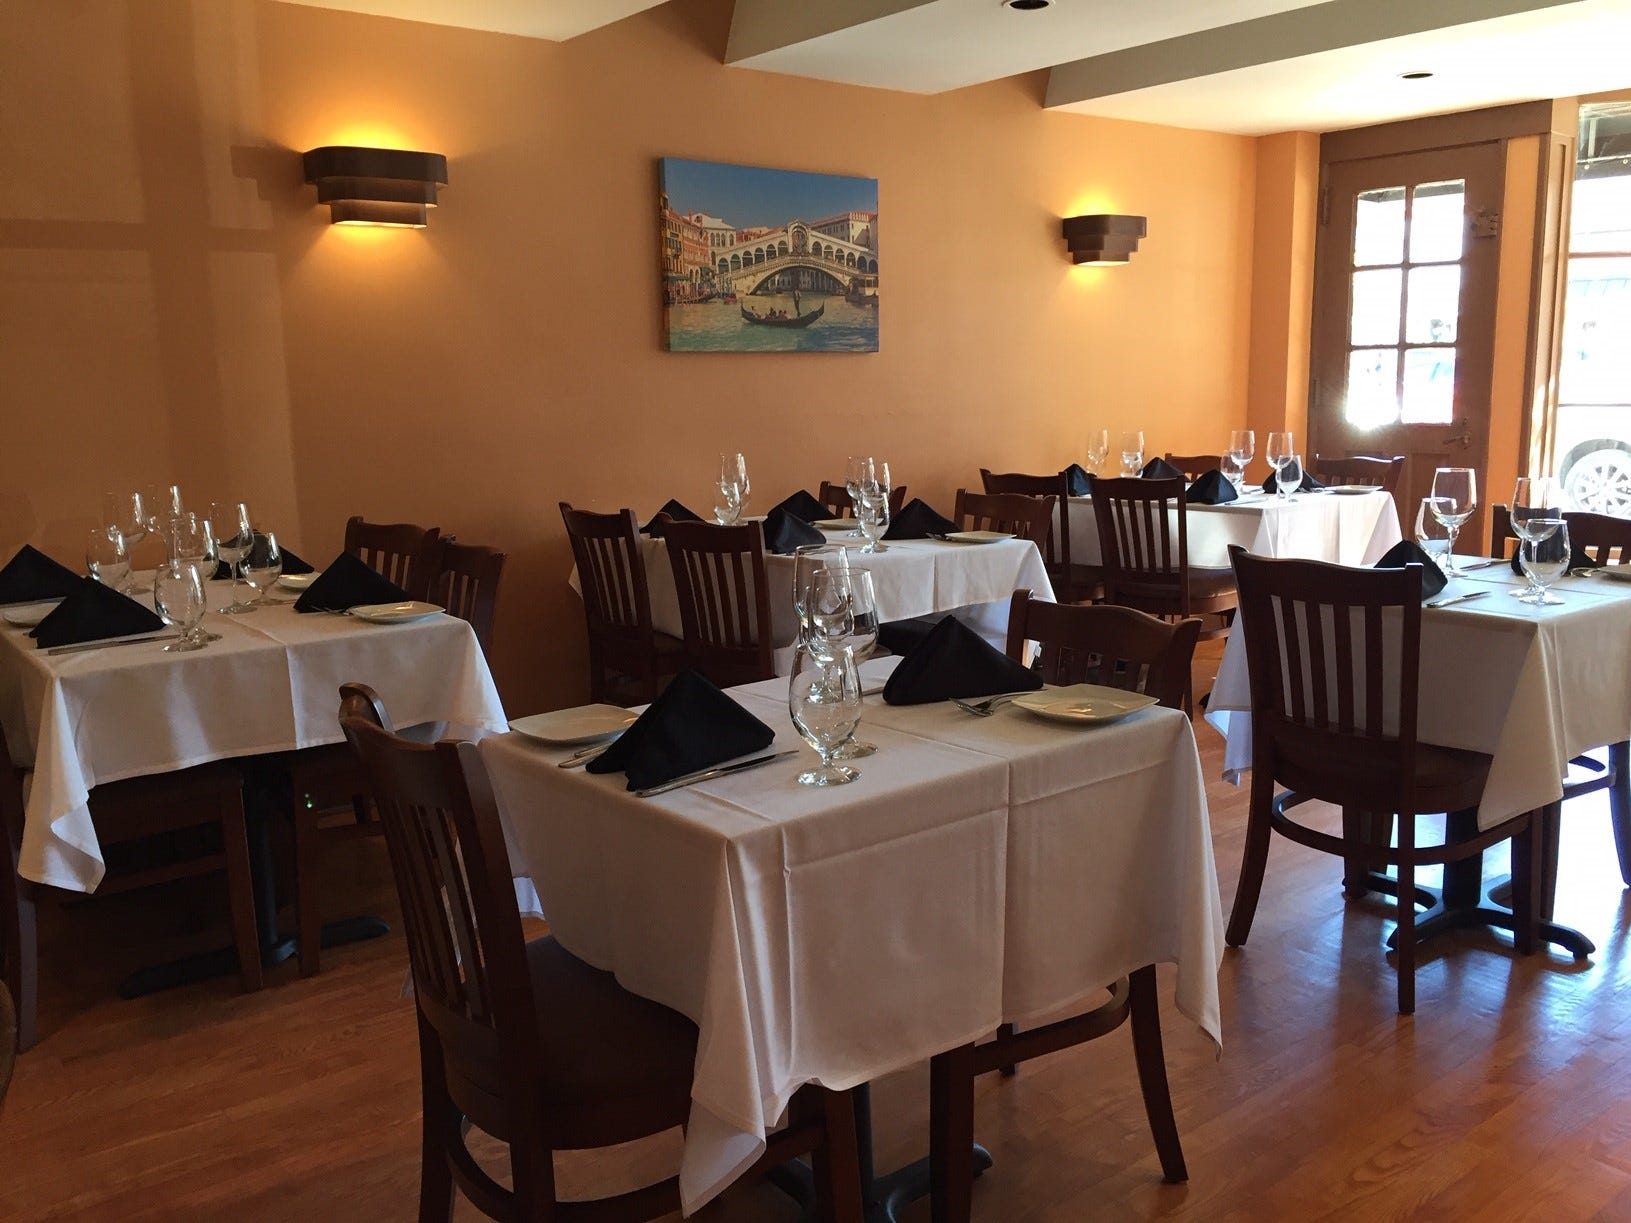 Verona Ristorante Italiano is open for lunch, dinner and weekend brunch.